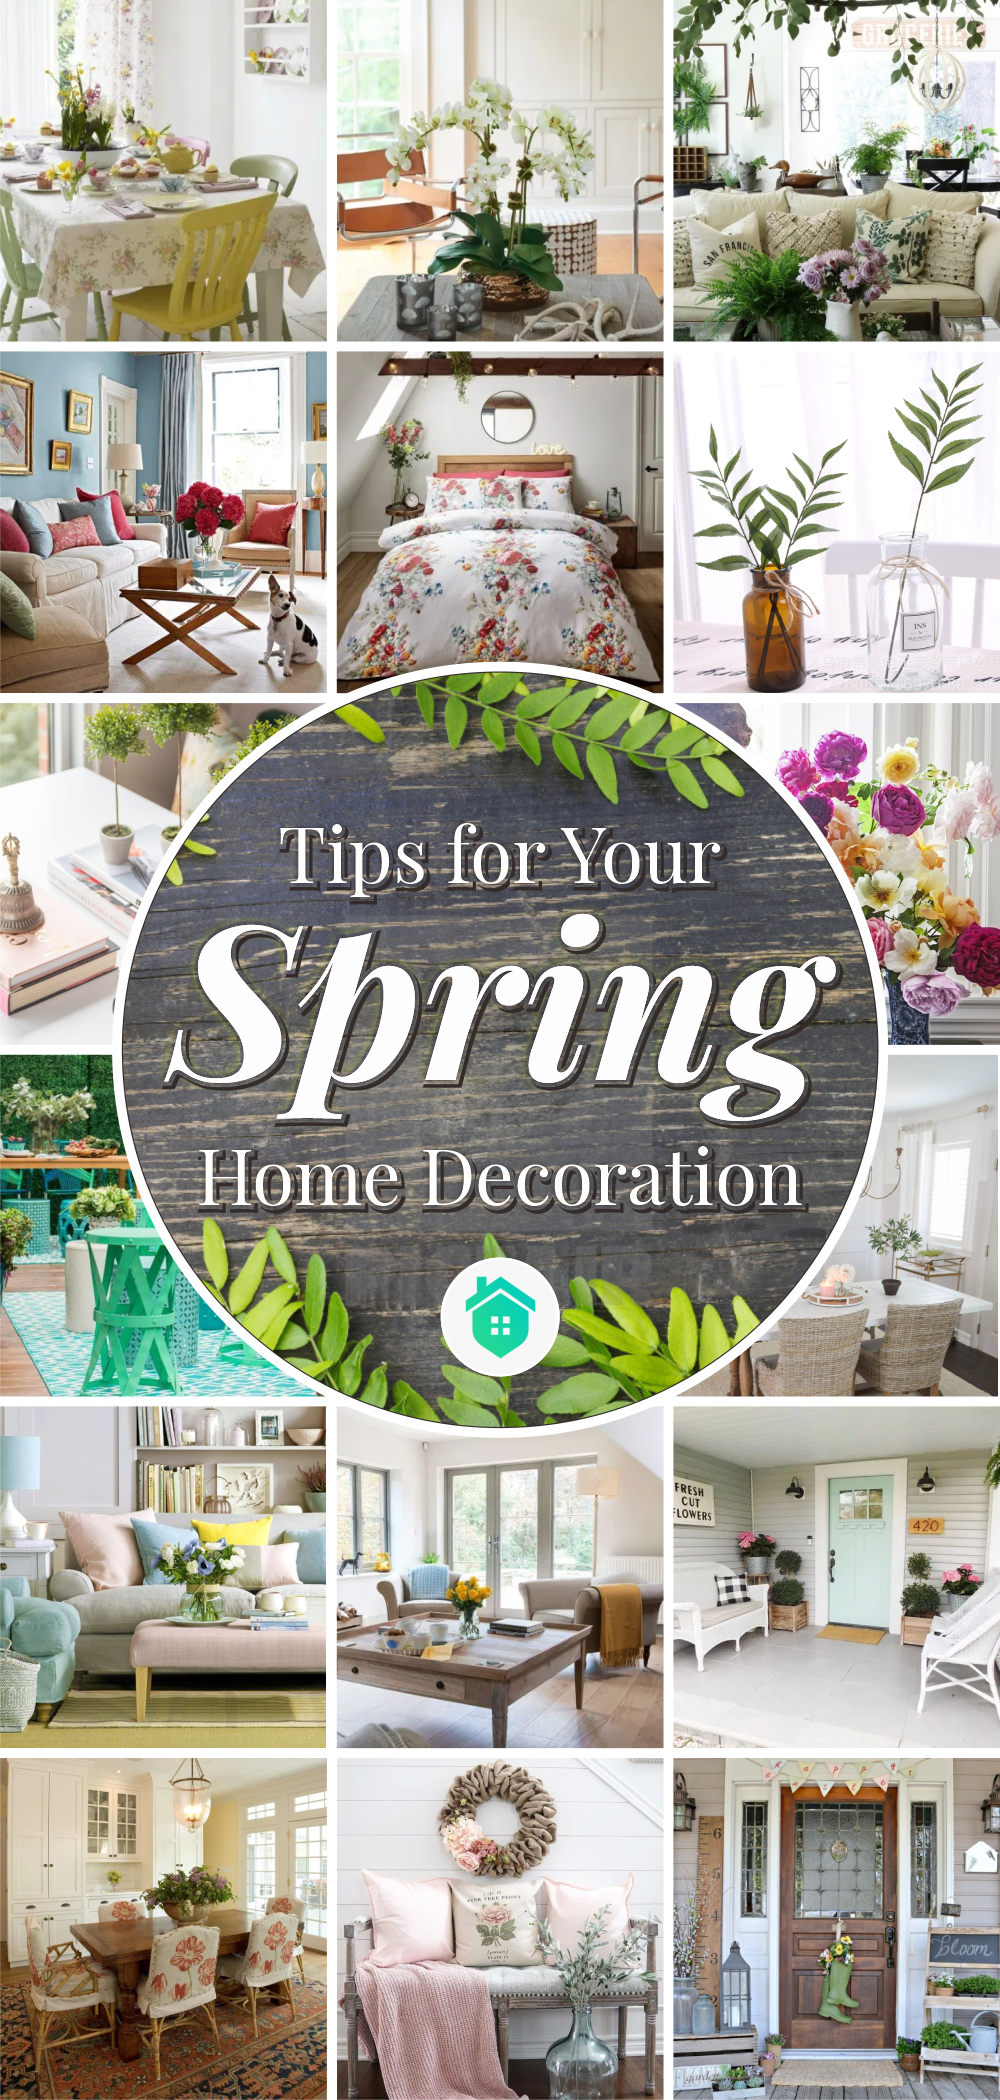 10 tips for your spring home decoration1